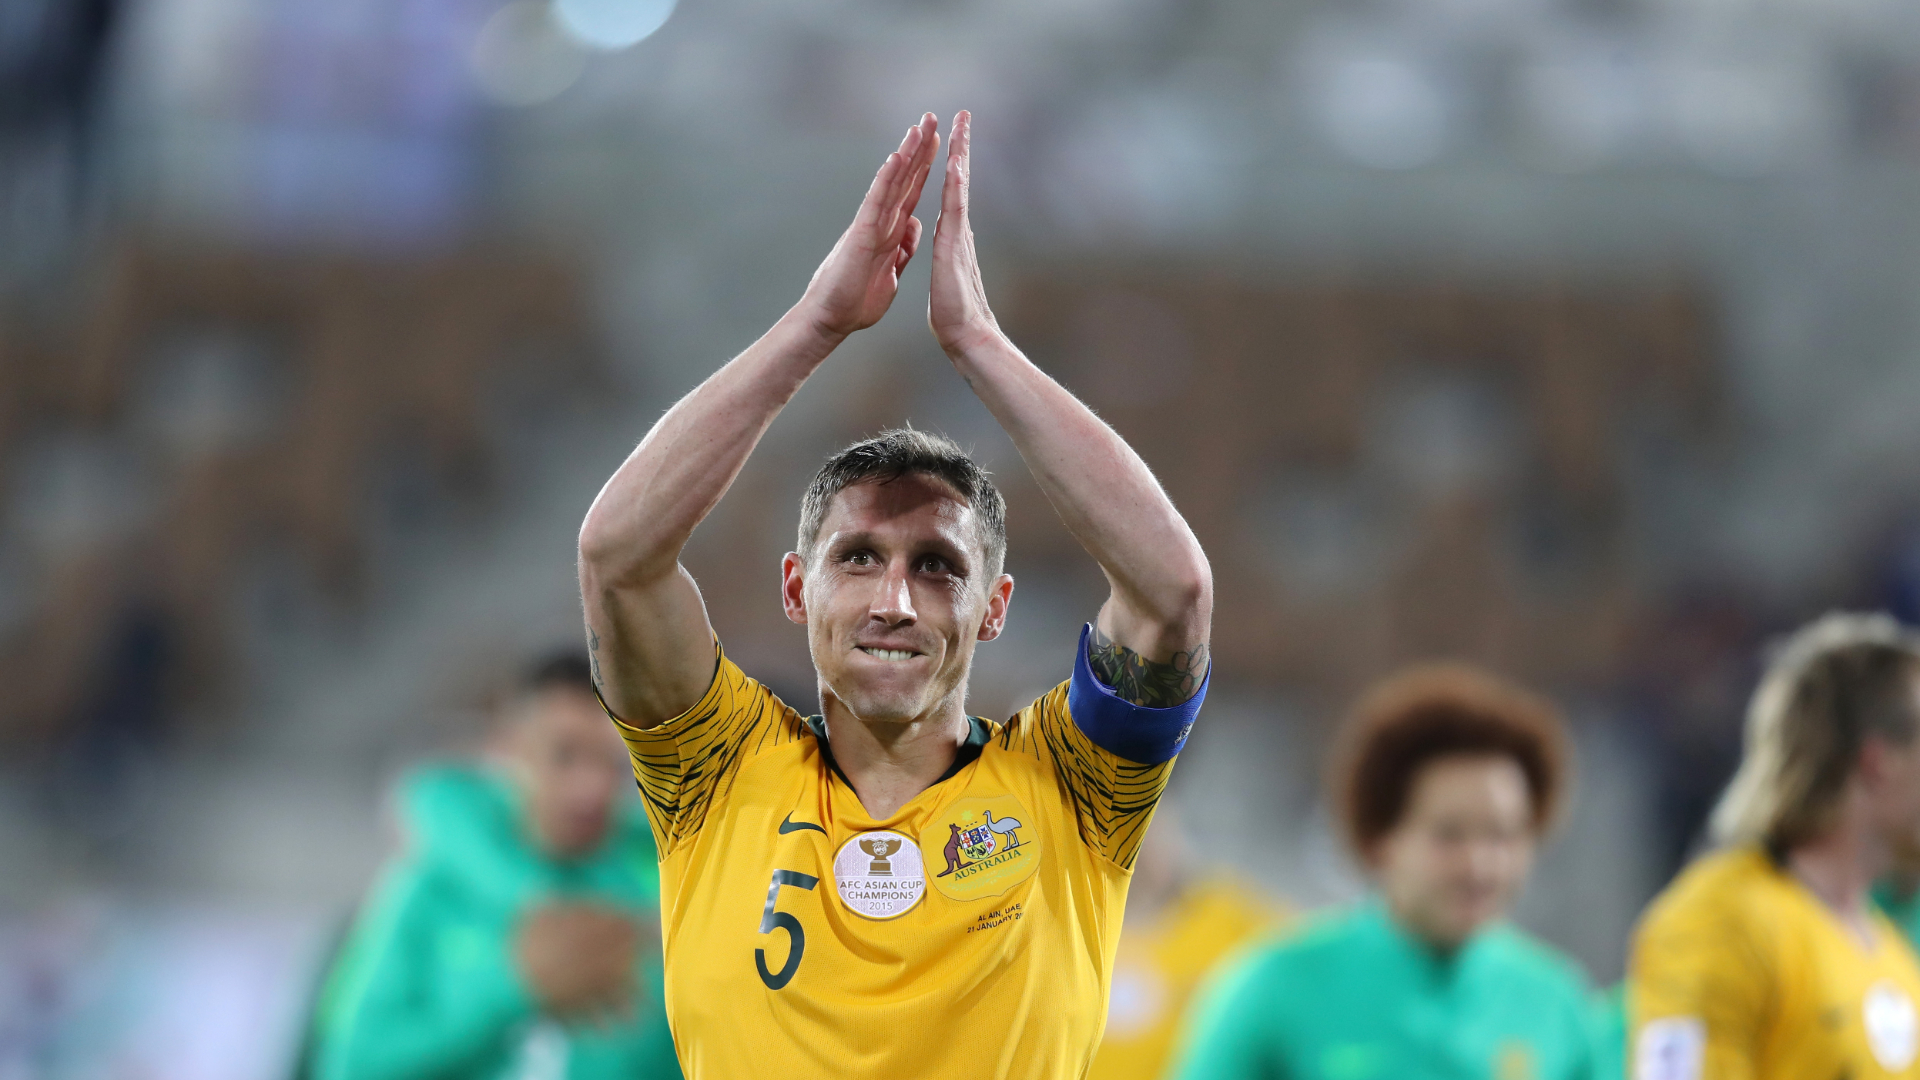 A-League and Australian football news LIVE: Milligan withdrawn from Socceroos squad